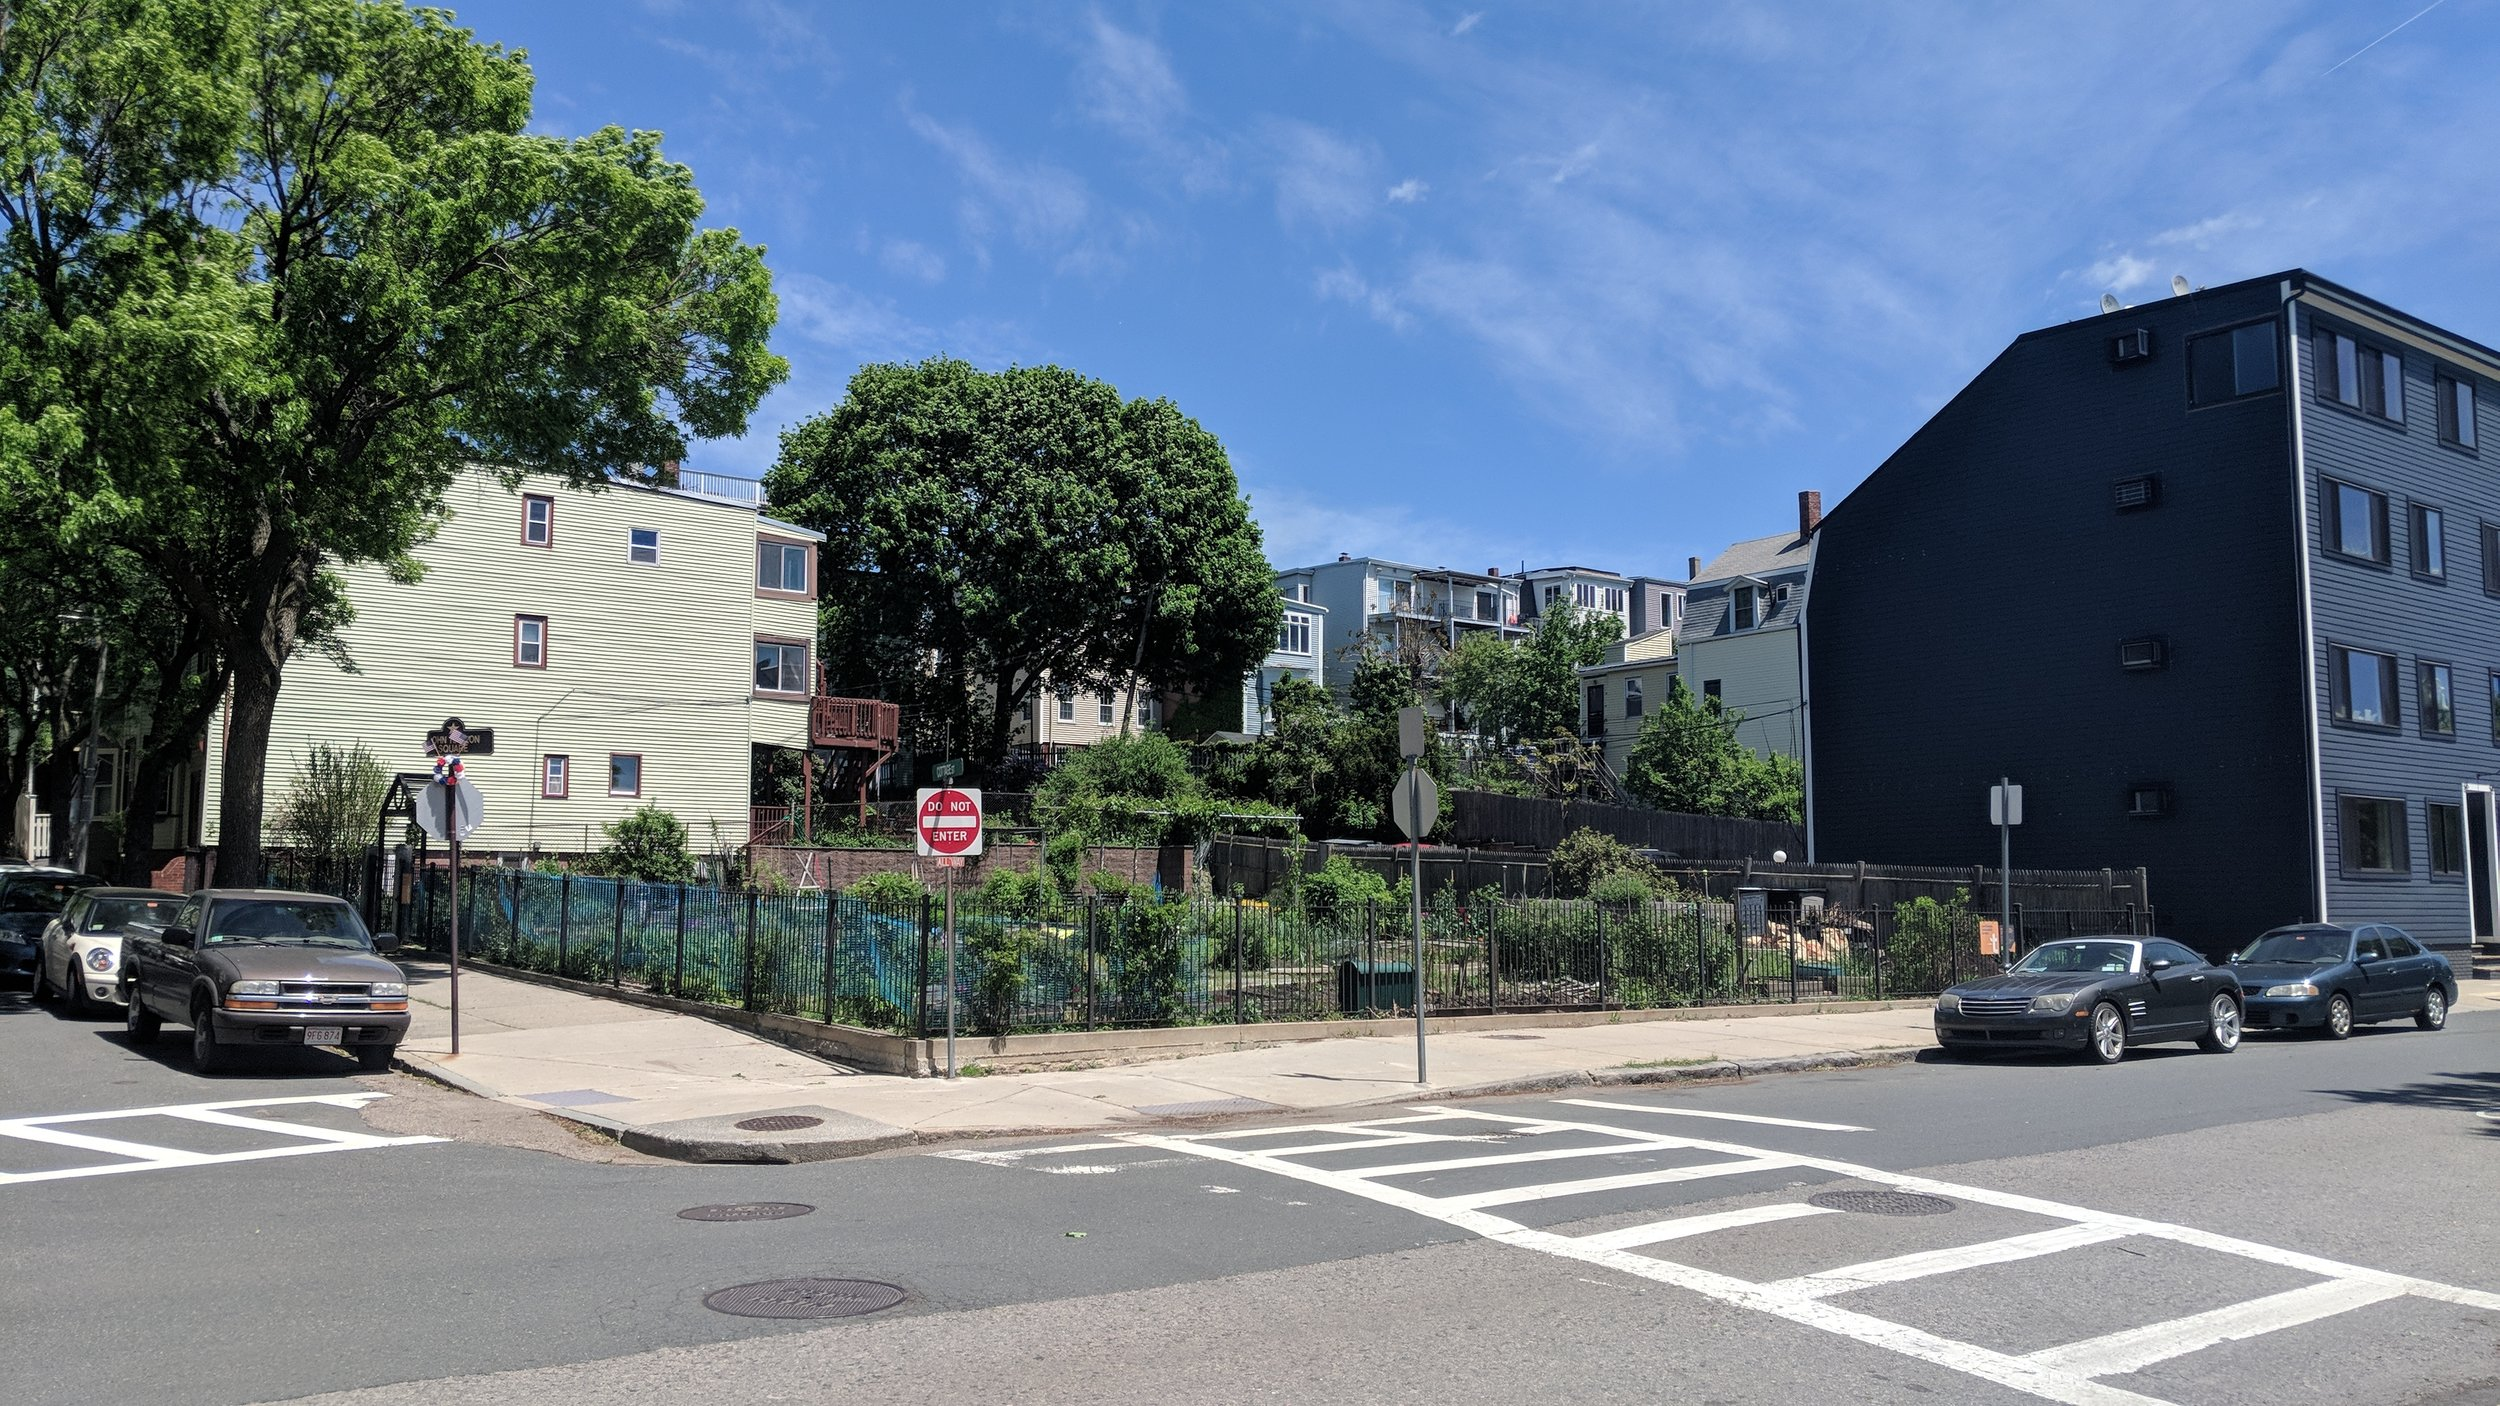 Joe Ciampa Community Garden (East Boston)